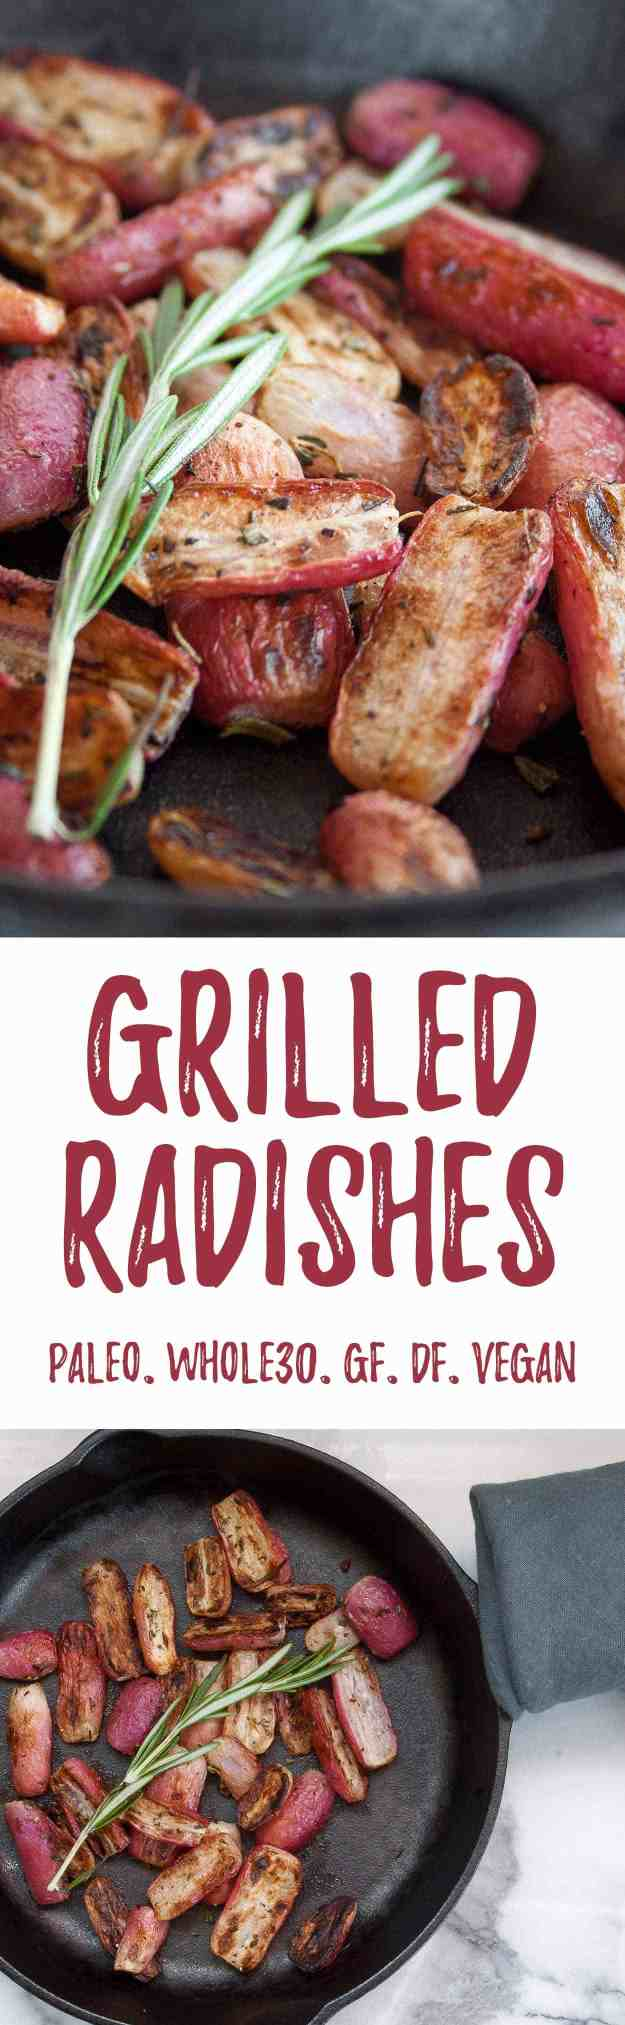 Grilled Radishes with Rosemary & Thyme | grilled vegetables, cast iron skillet, easy, roasted radishes, grilled radish recipe, herbs, paleo, whole30, diary free, gluten free, vegan | hungrybynature.com